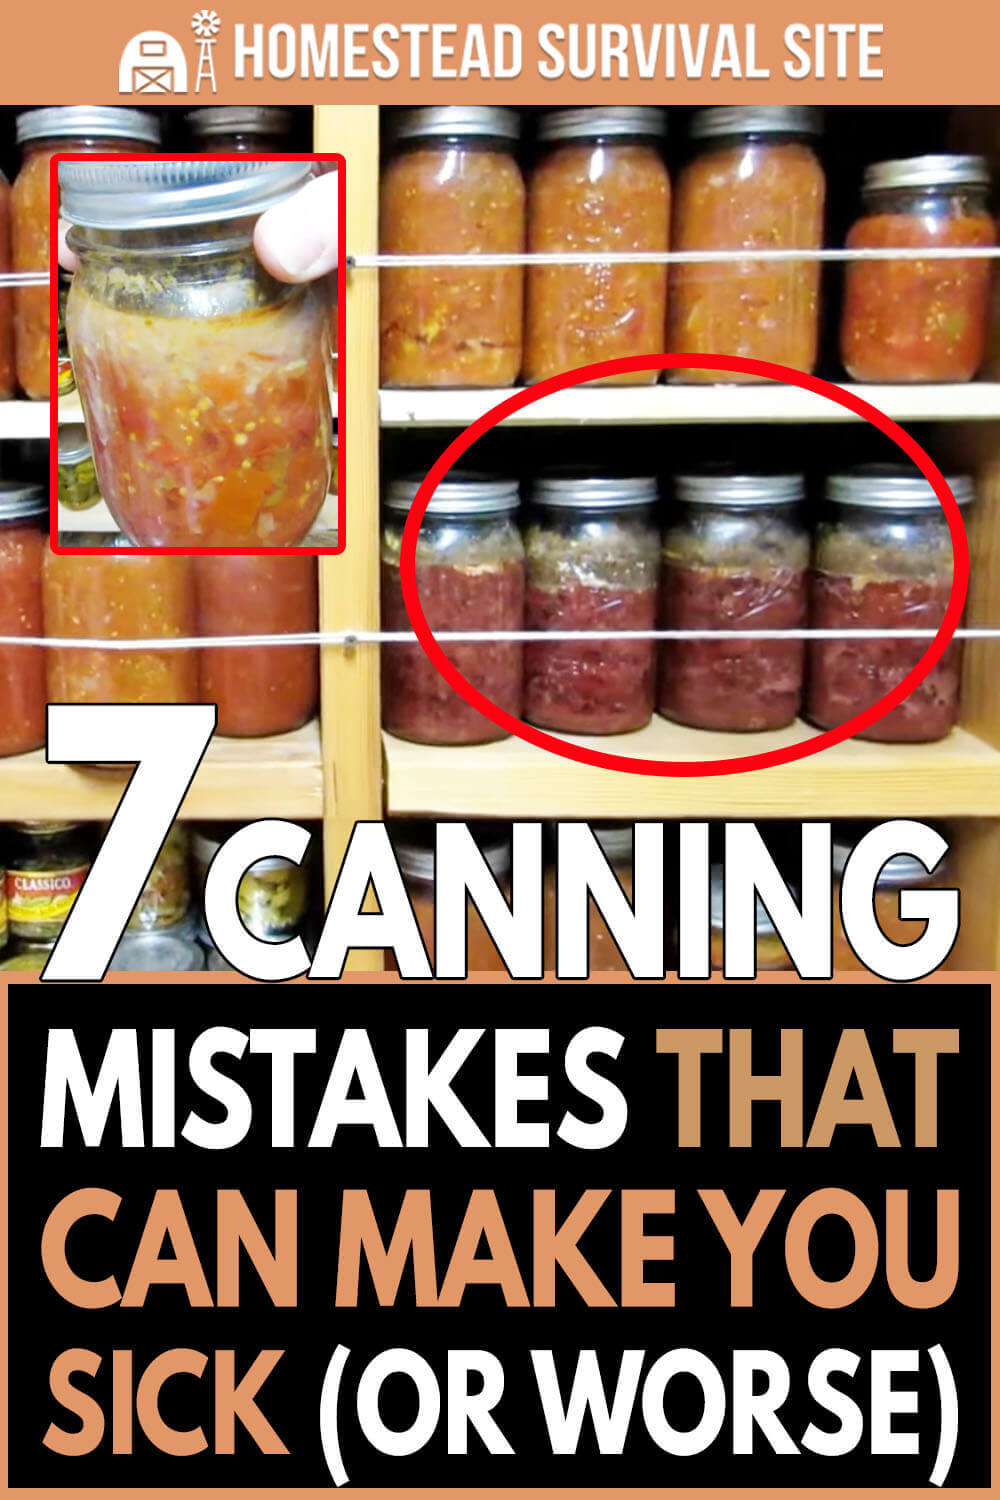 7 Canning Mistakes That Can Make You Sick (Or Worse)